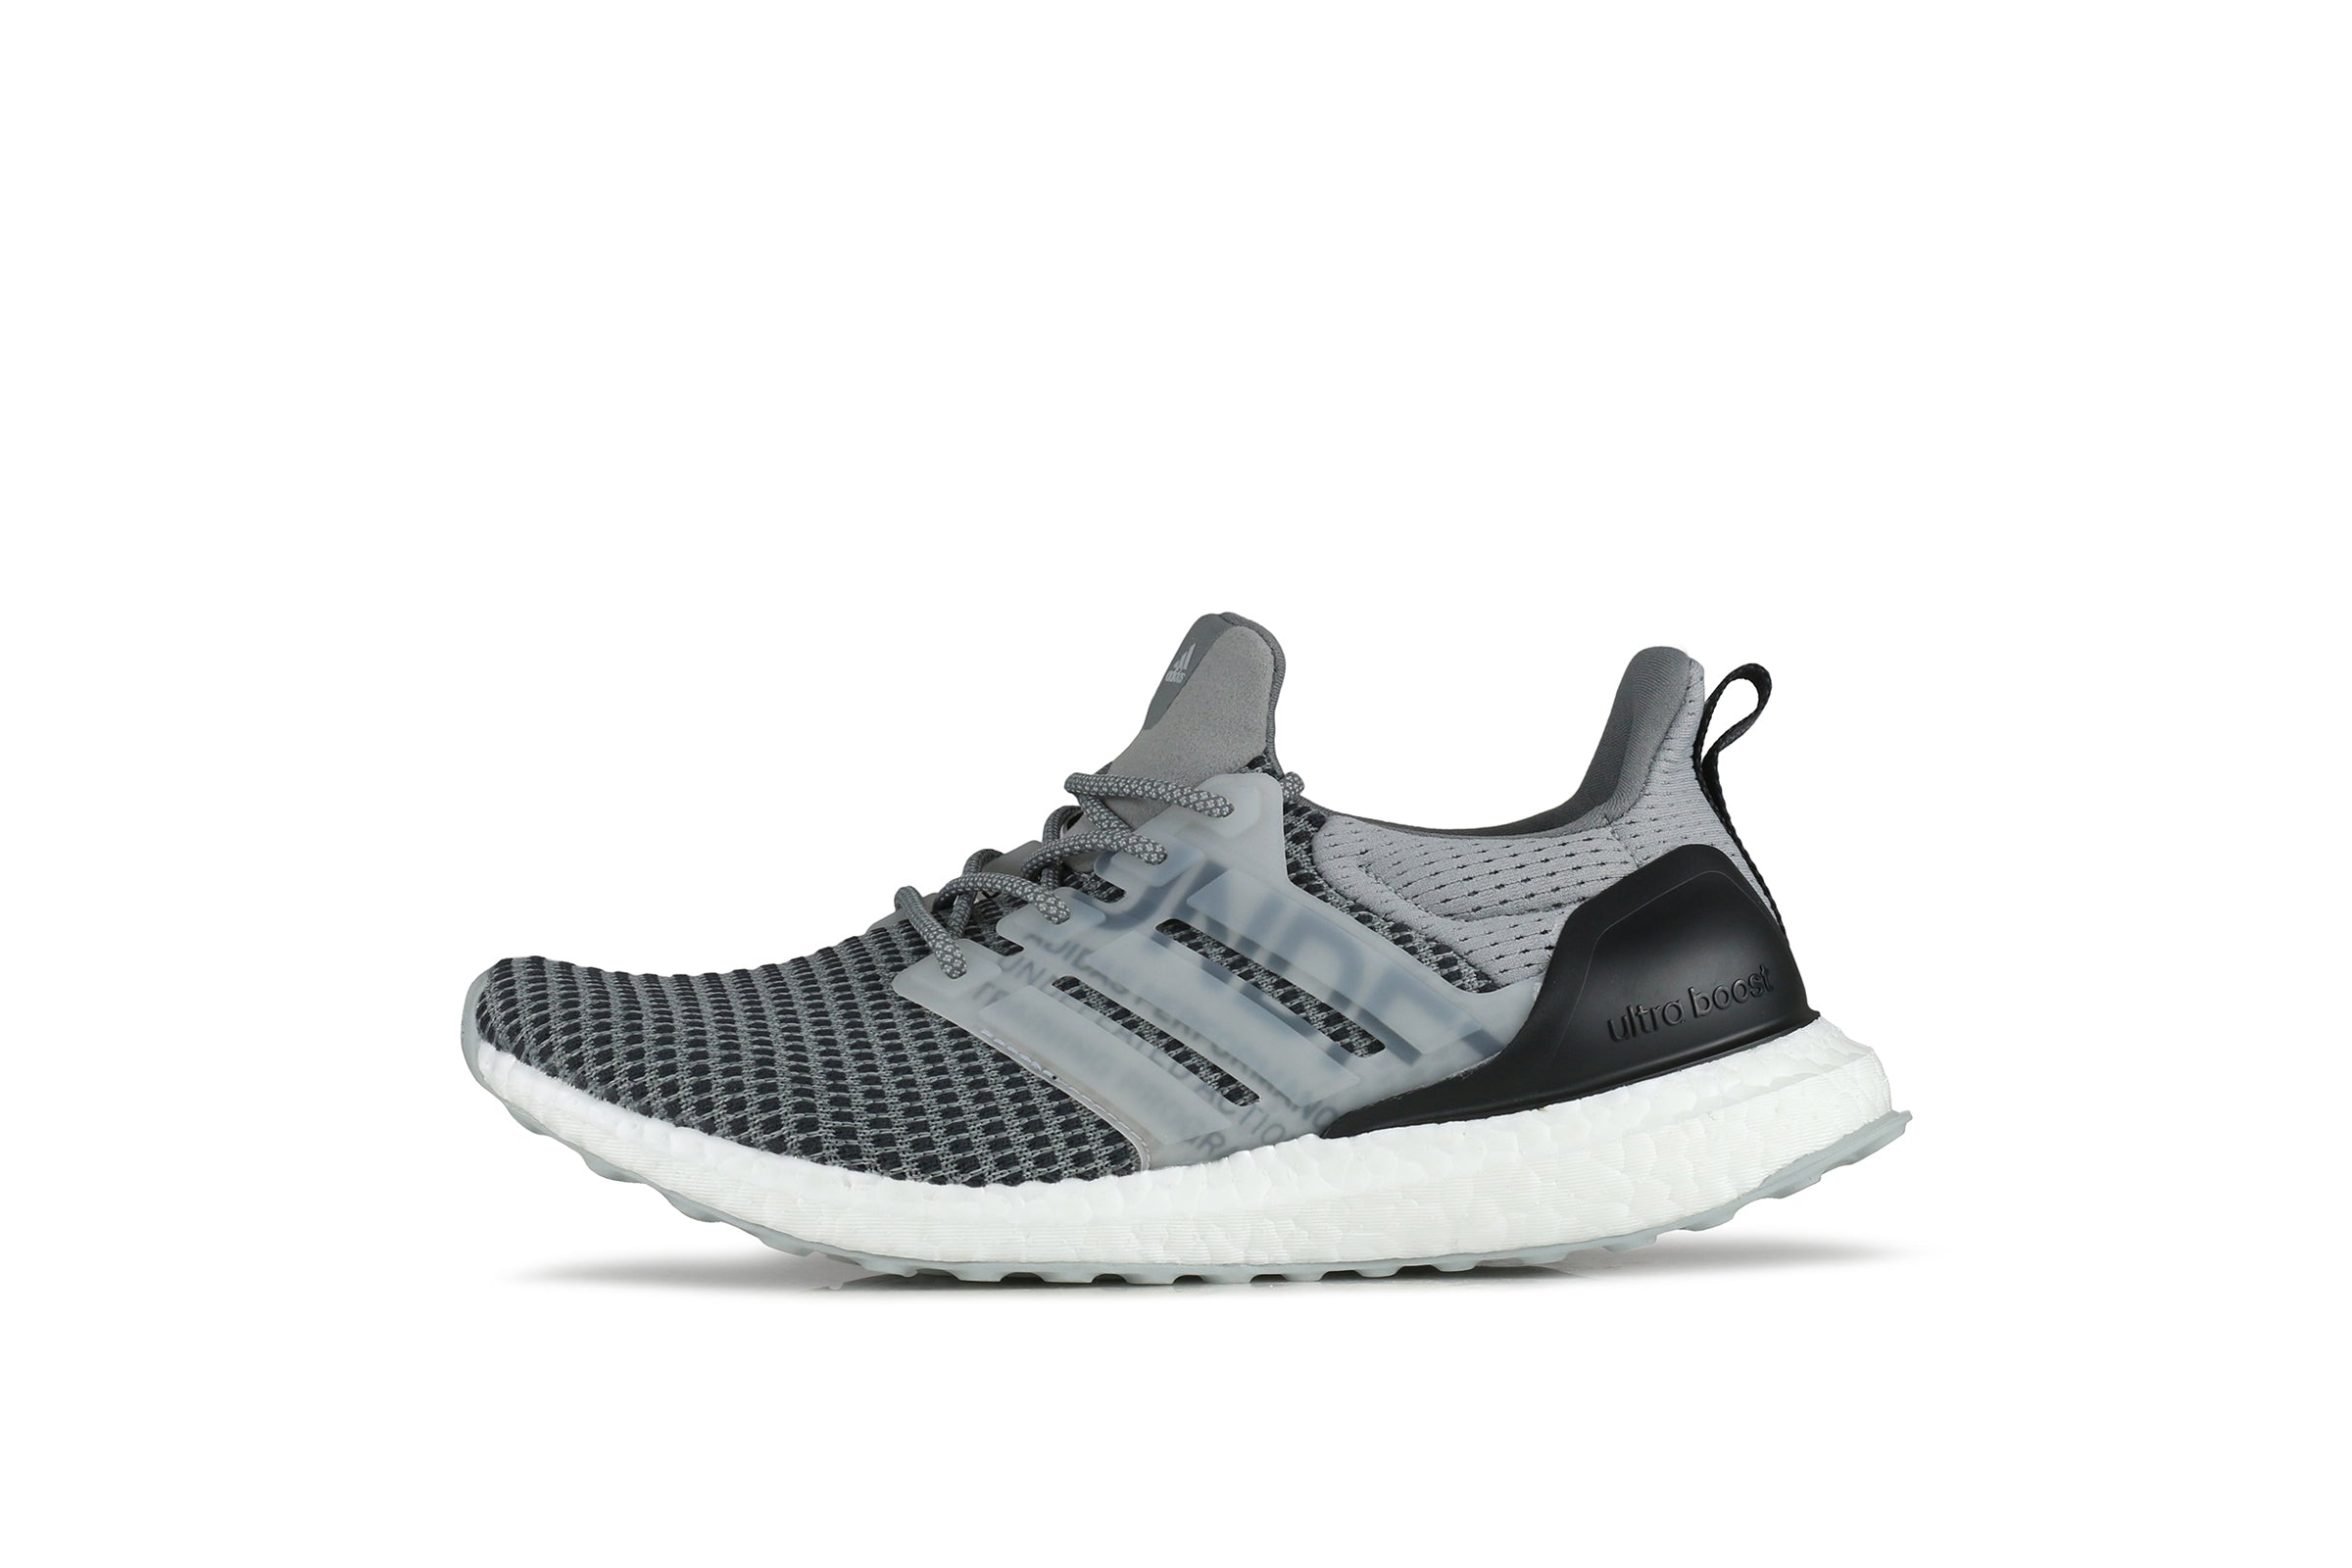 b171c22b2a9 ... black adidas ultra boost shoes 354c6 eb5b3 inexpensive adidas ultraboost  x undefeated 5afb6 04a5c ...